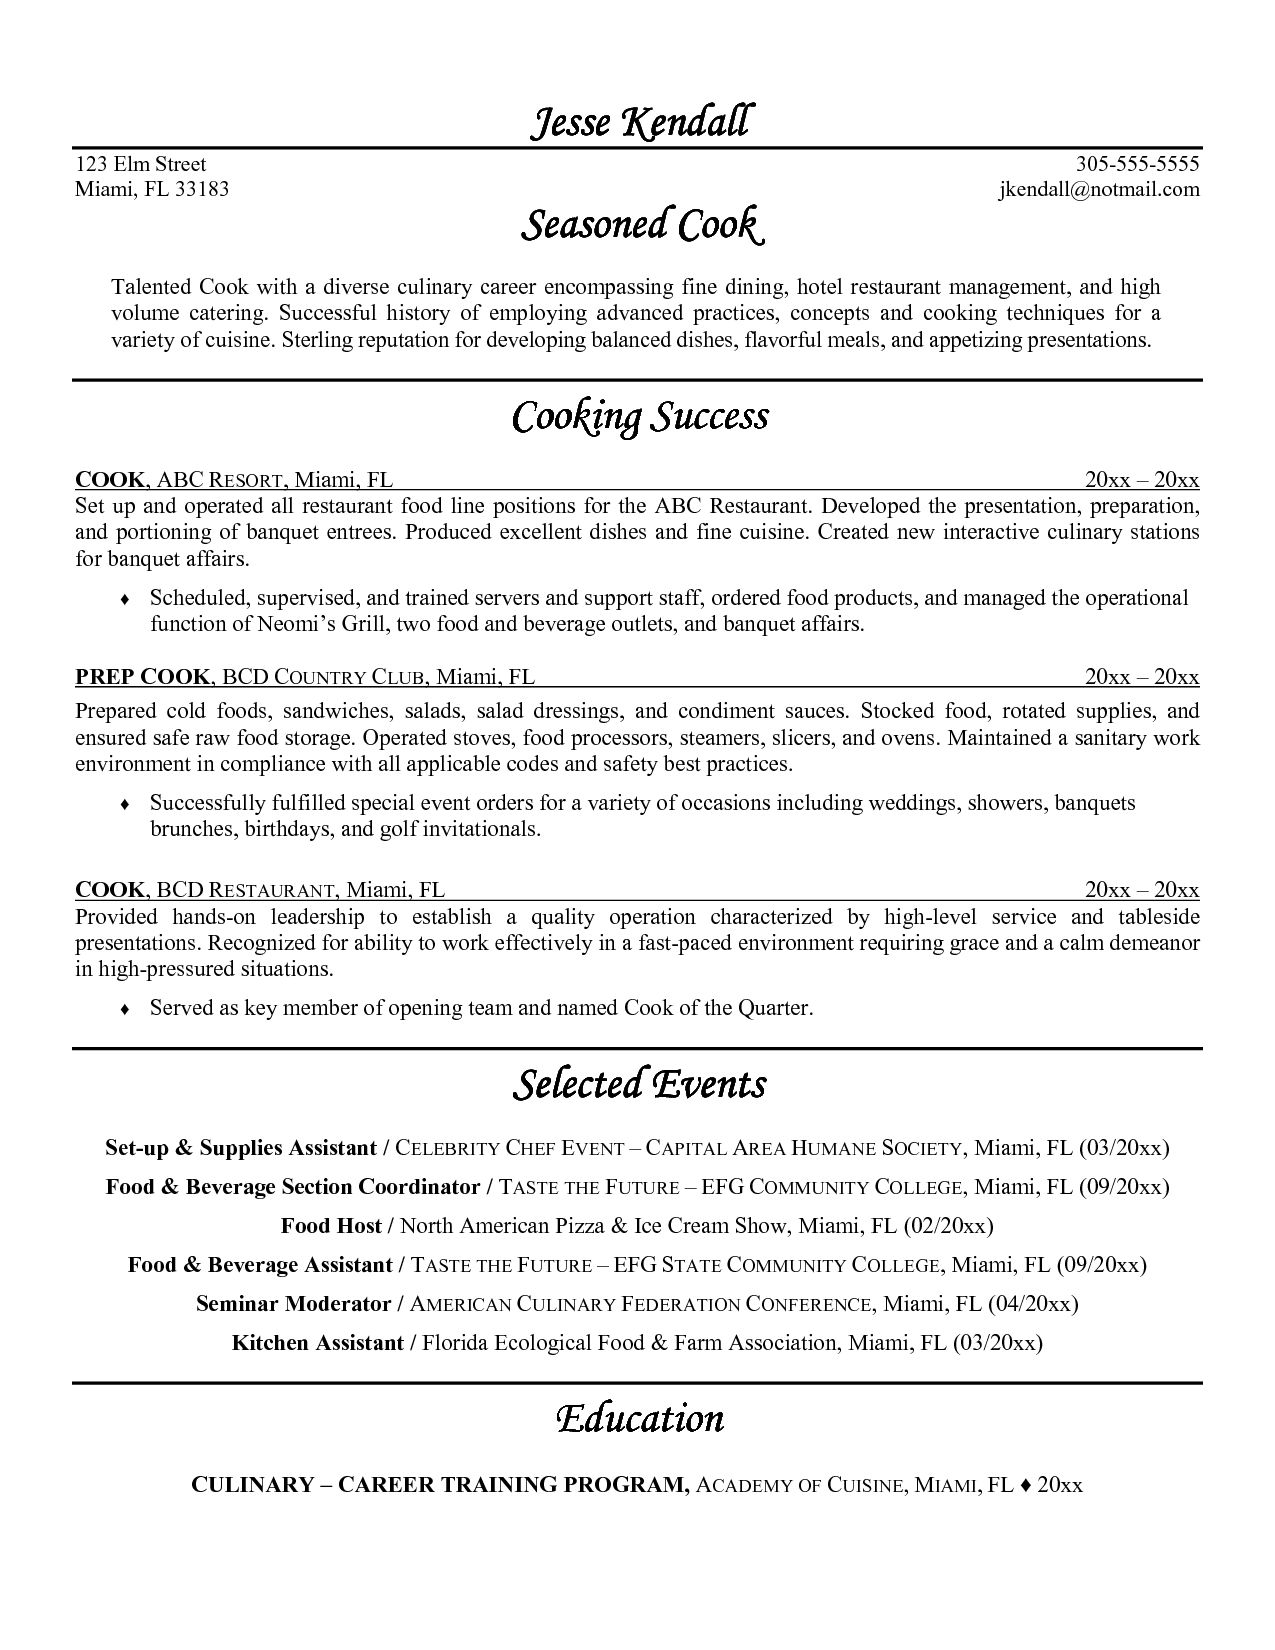 Restaurant Resume Objective Head Chef Resume Samples Hospitality Templates Free Sample Format